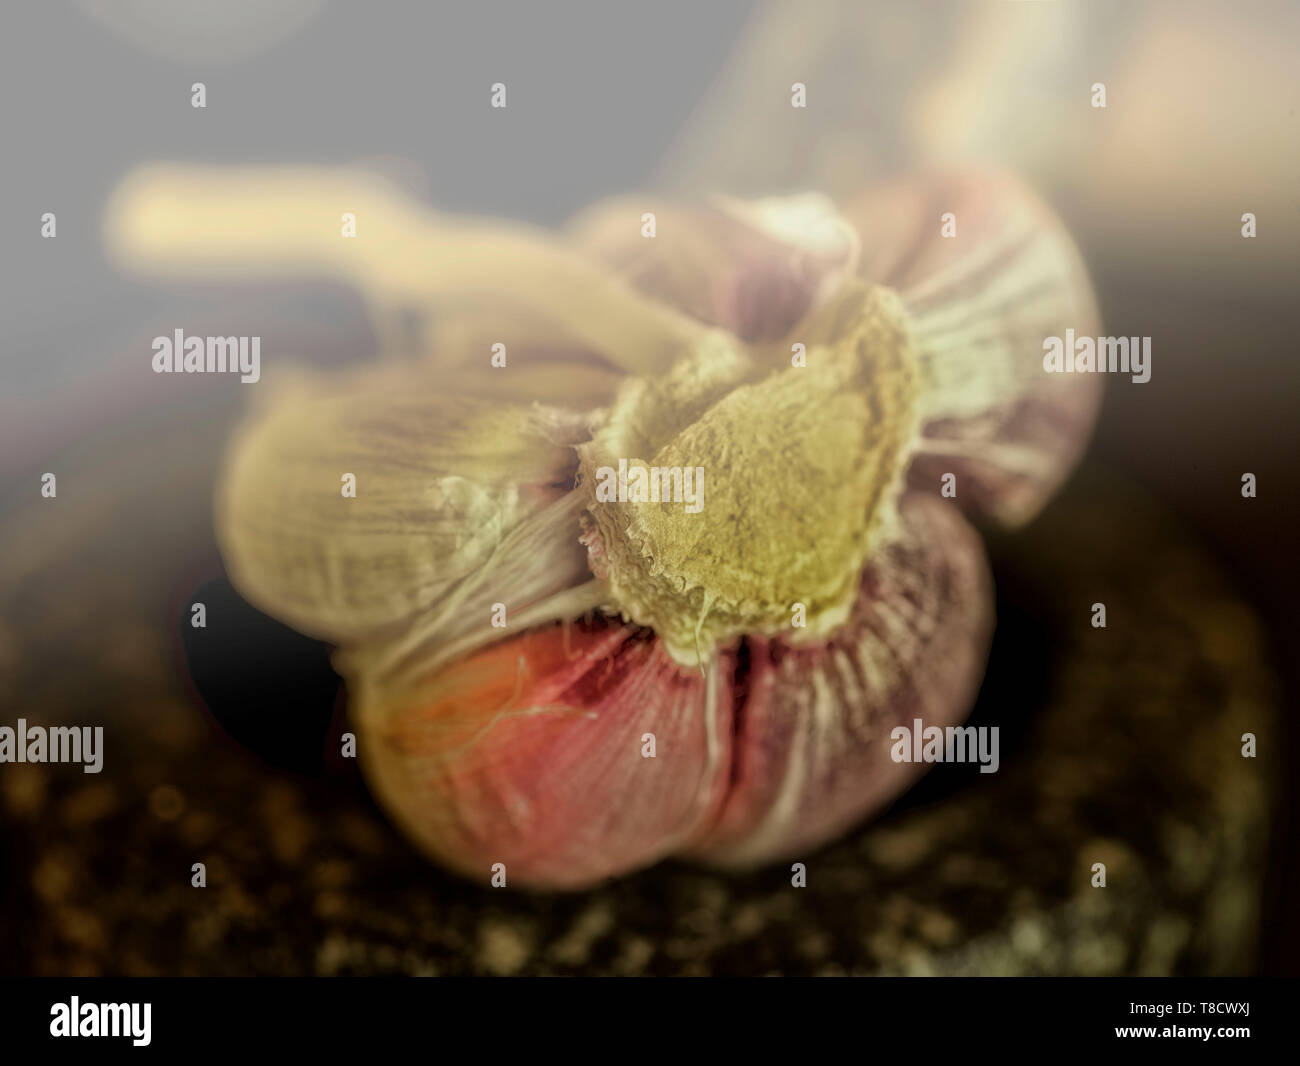 Garlic clove sitting in mortar with pestle food close up photograph Stock Photo